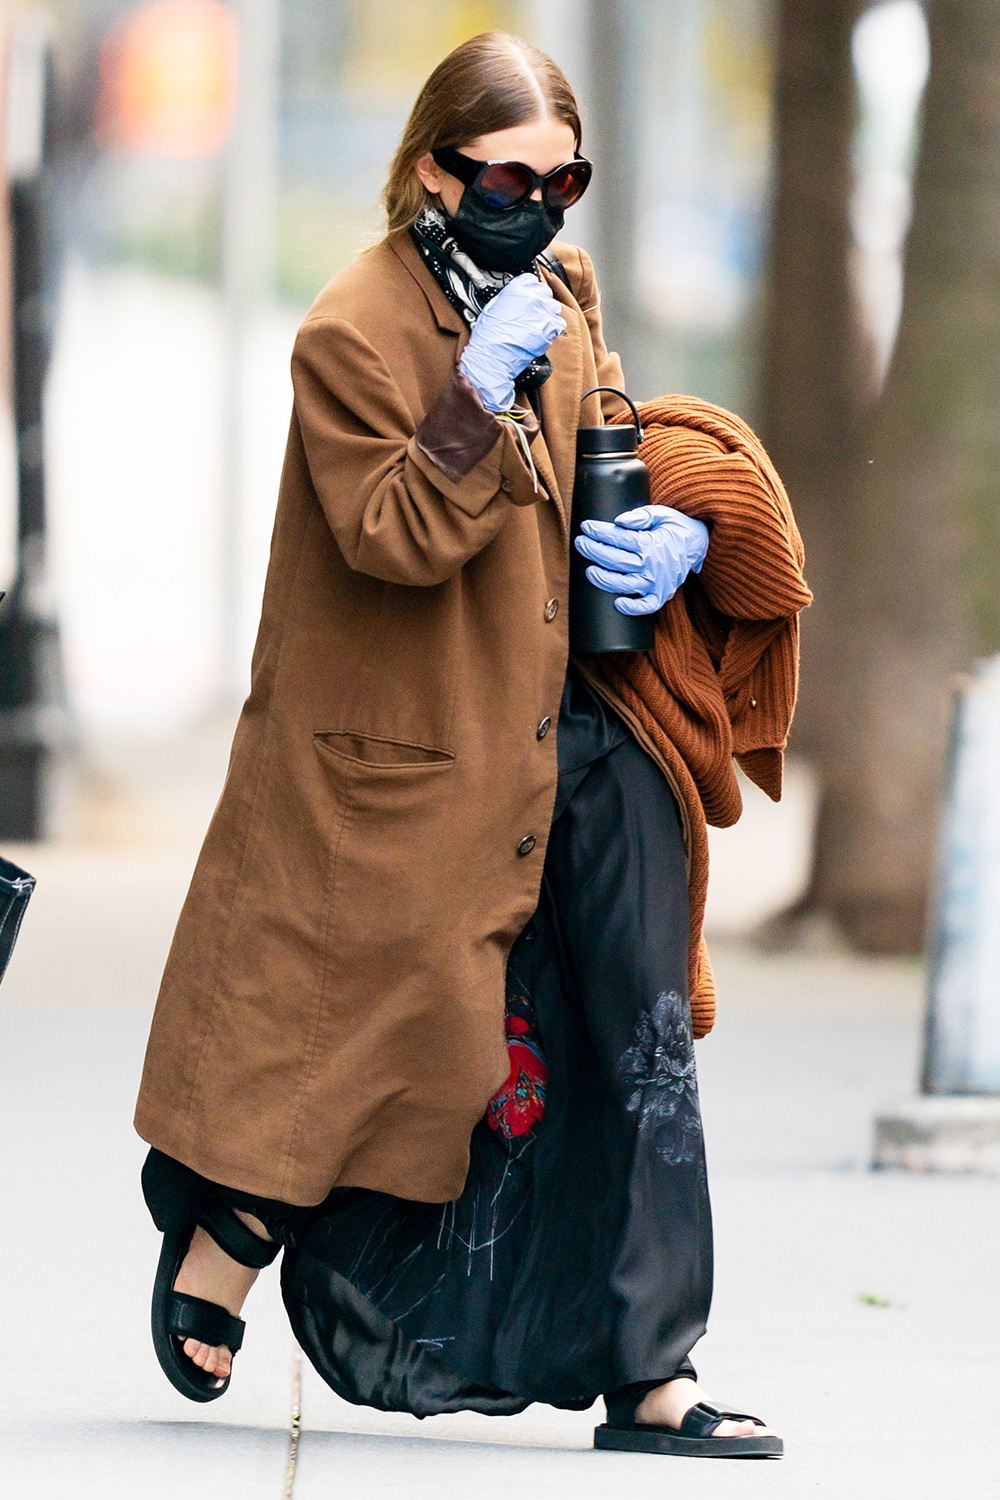 Ashley Olsen is seen in SoHo on May 14, 2020 in New York City